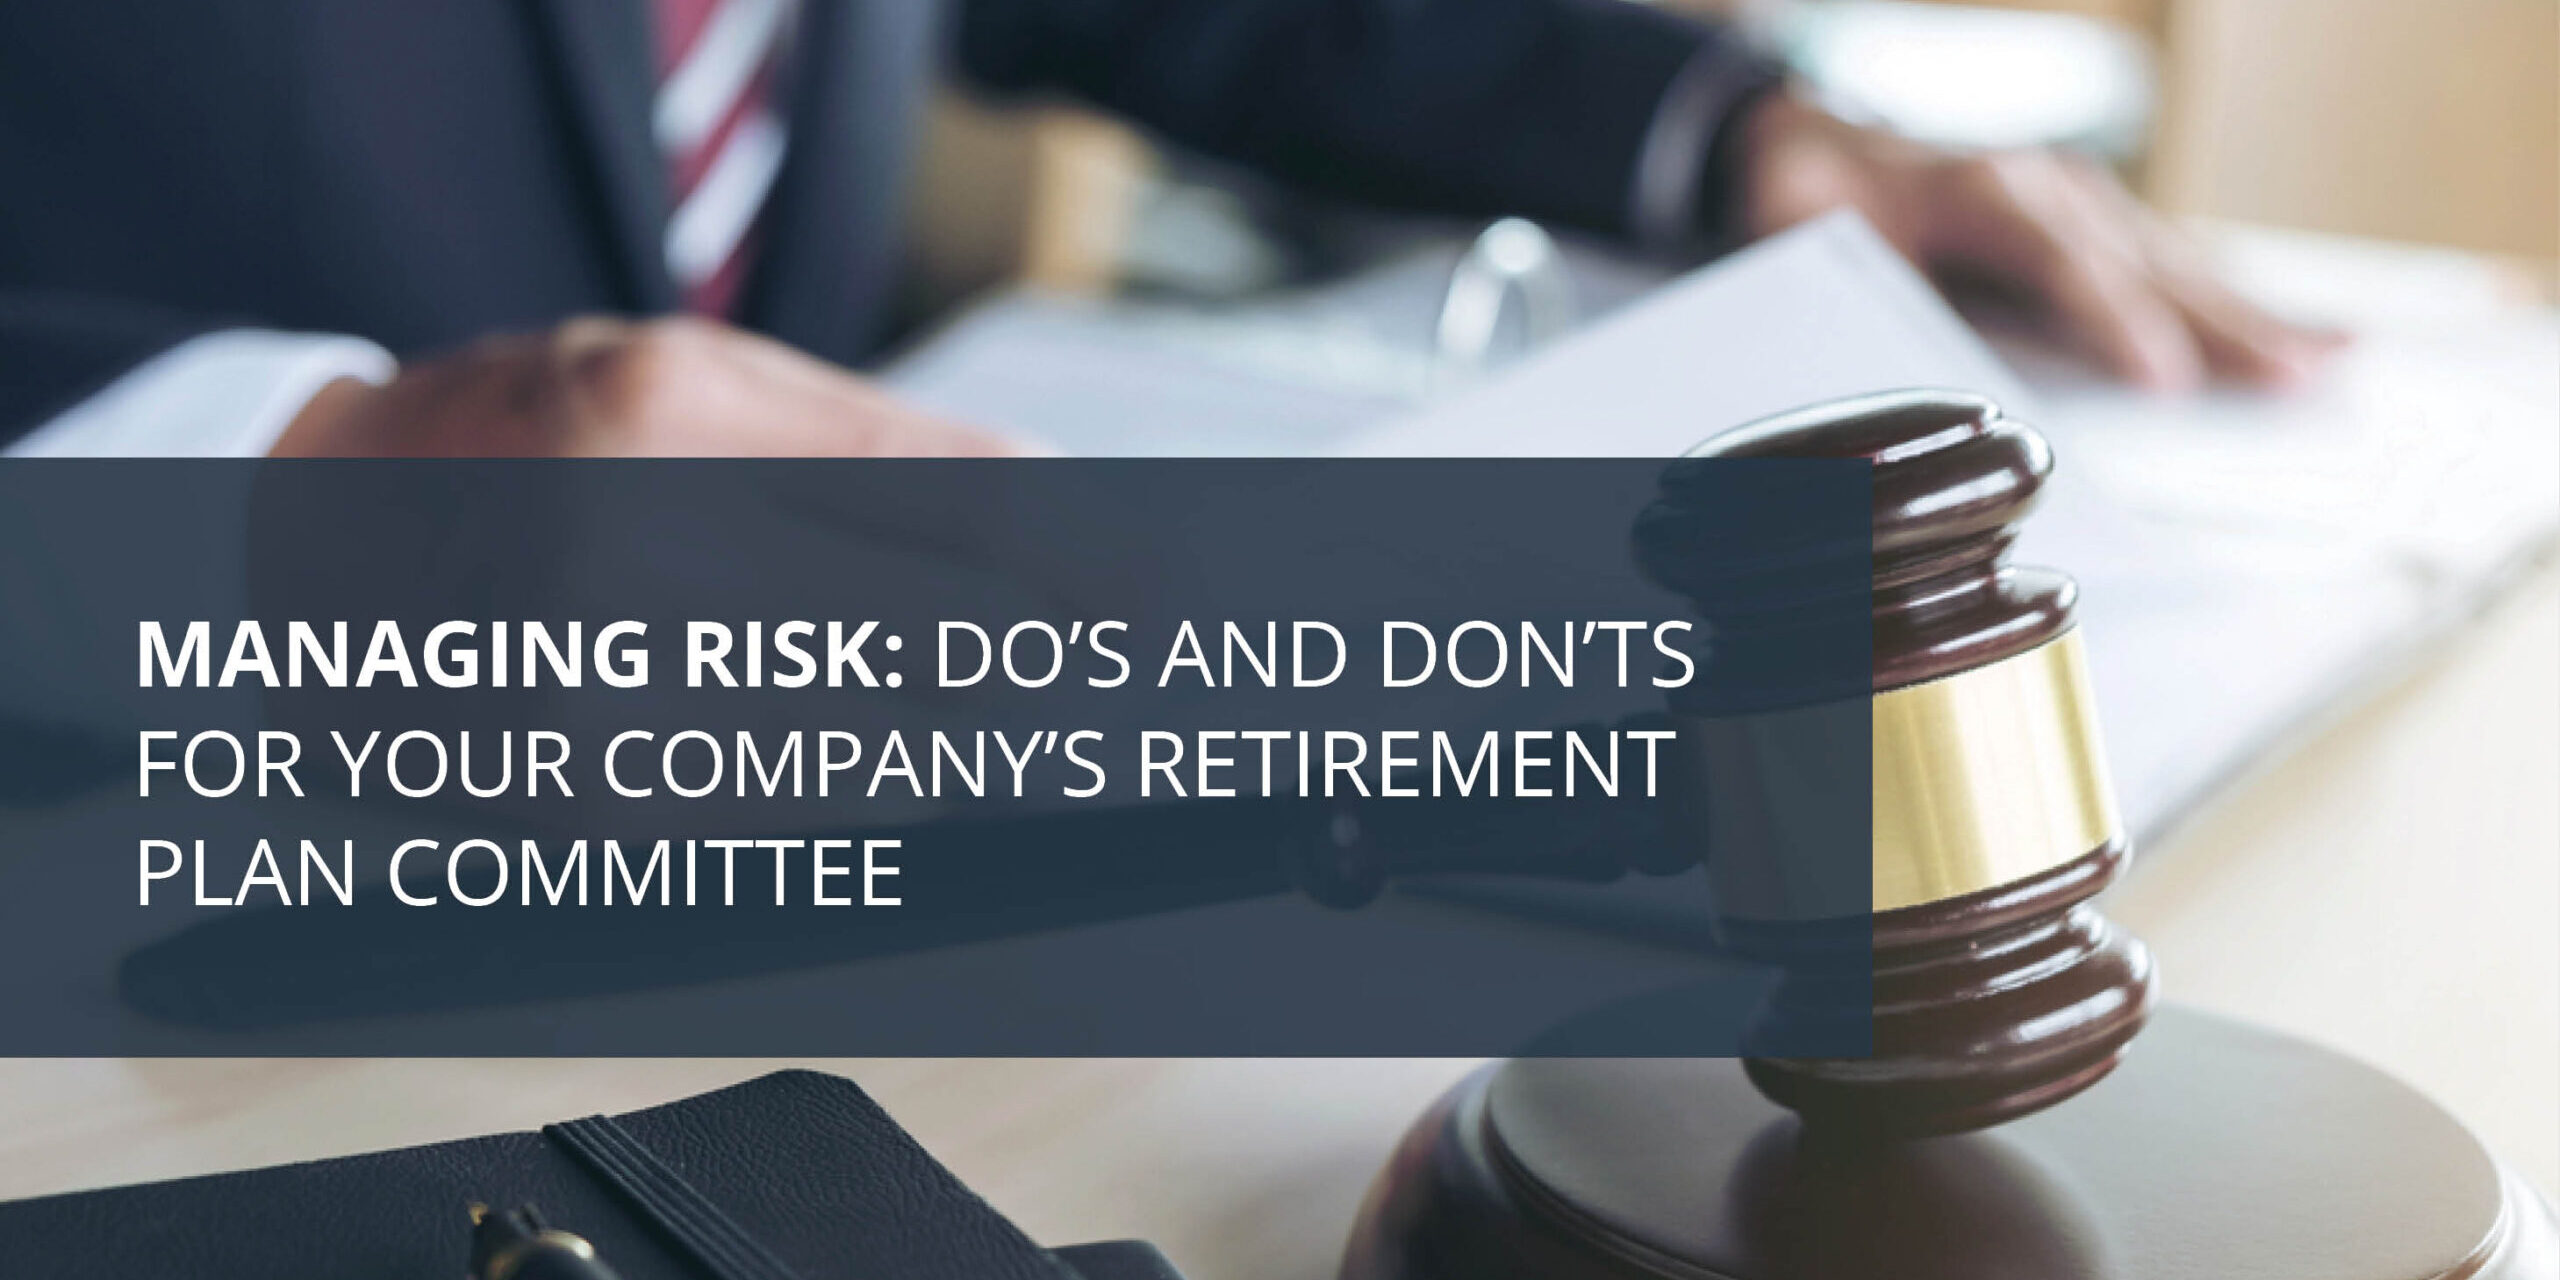 Headline Image - Do's and Don'ts for Your Retirement Plan Committee